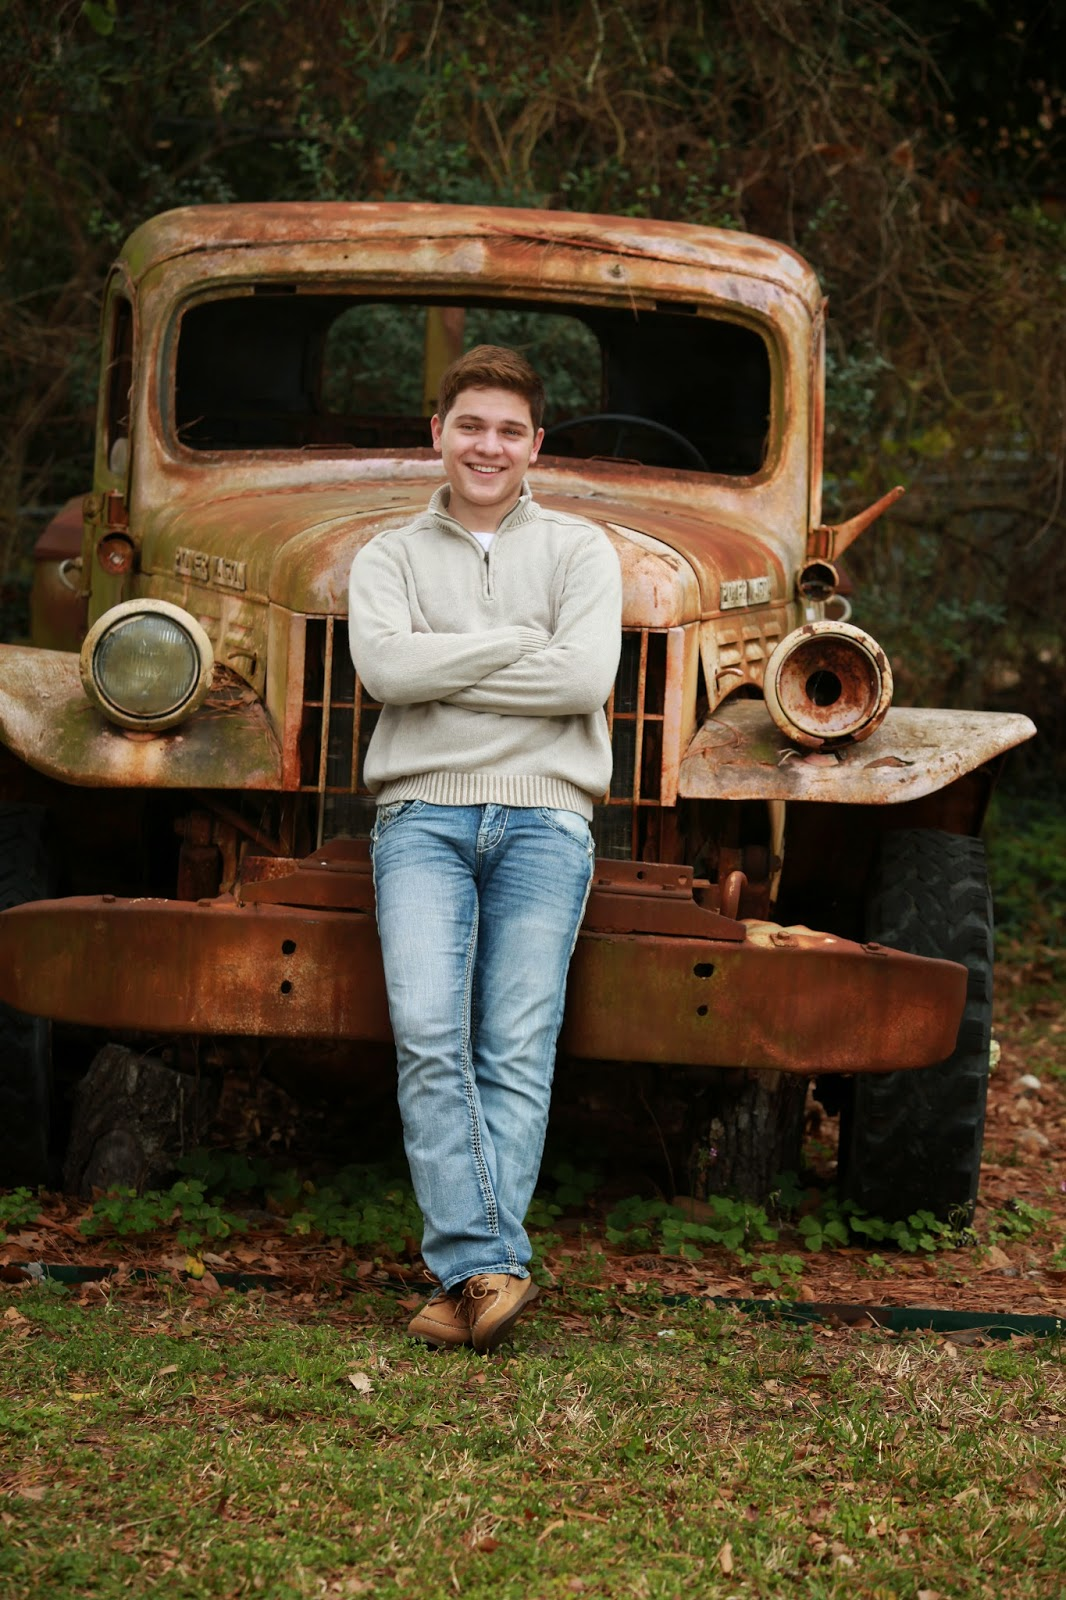 Siobhan Photography Senior Guy on Rustic Truck